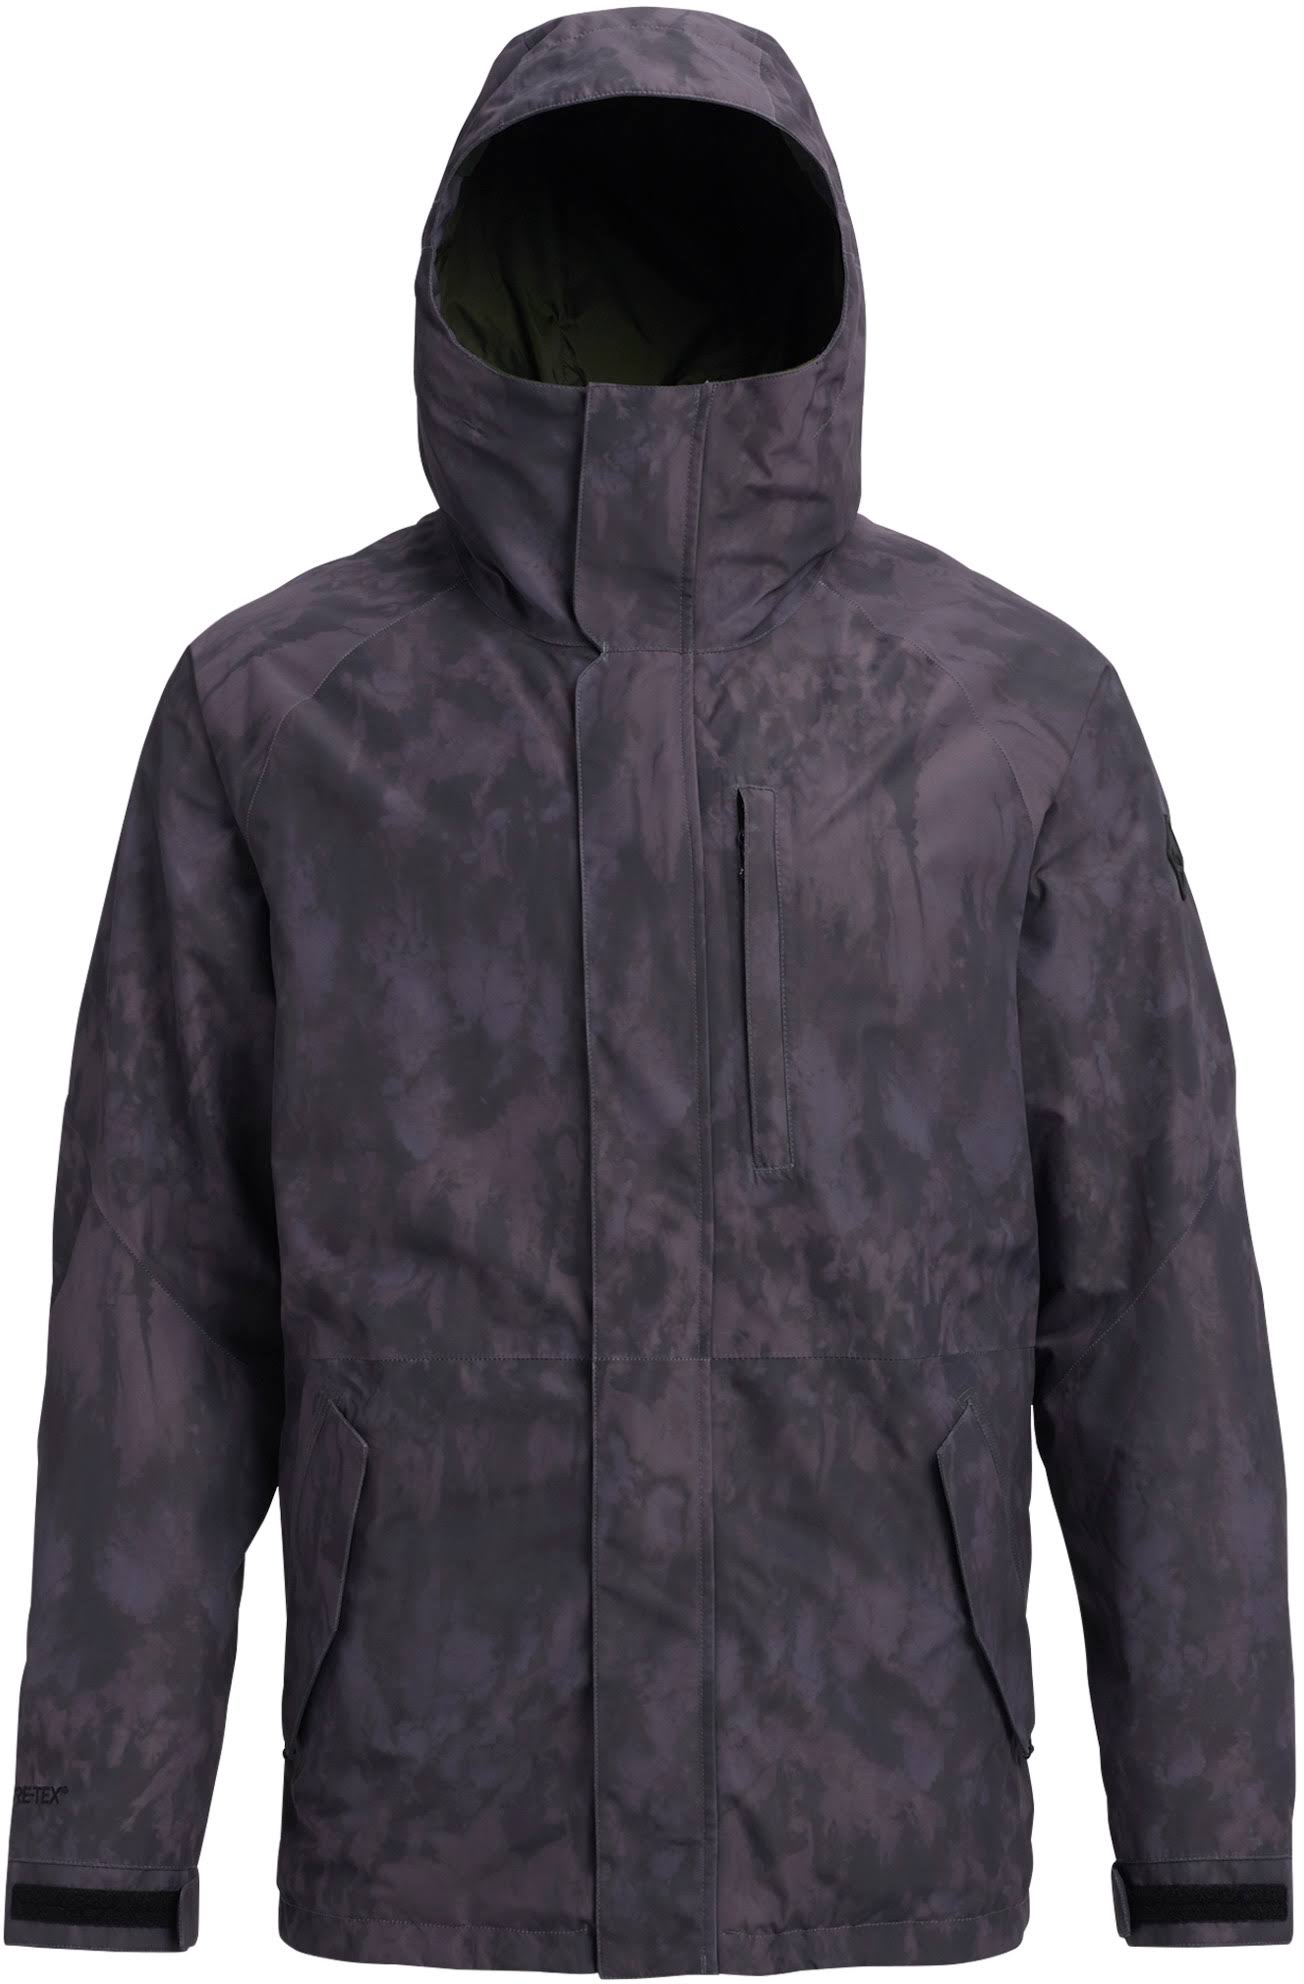 Shadows Cloud Für Gore Radialjacke Burton Medium Herren tex xYUw4Yqp0